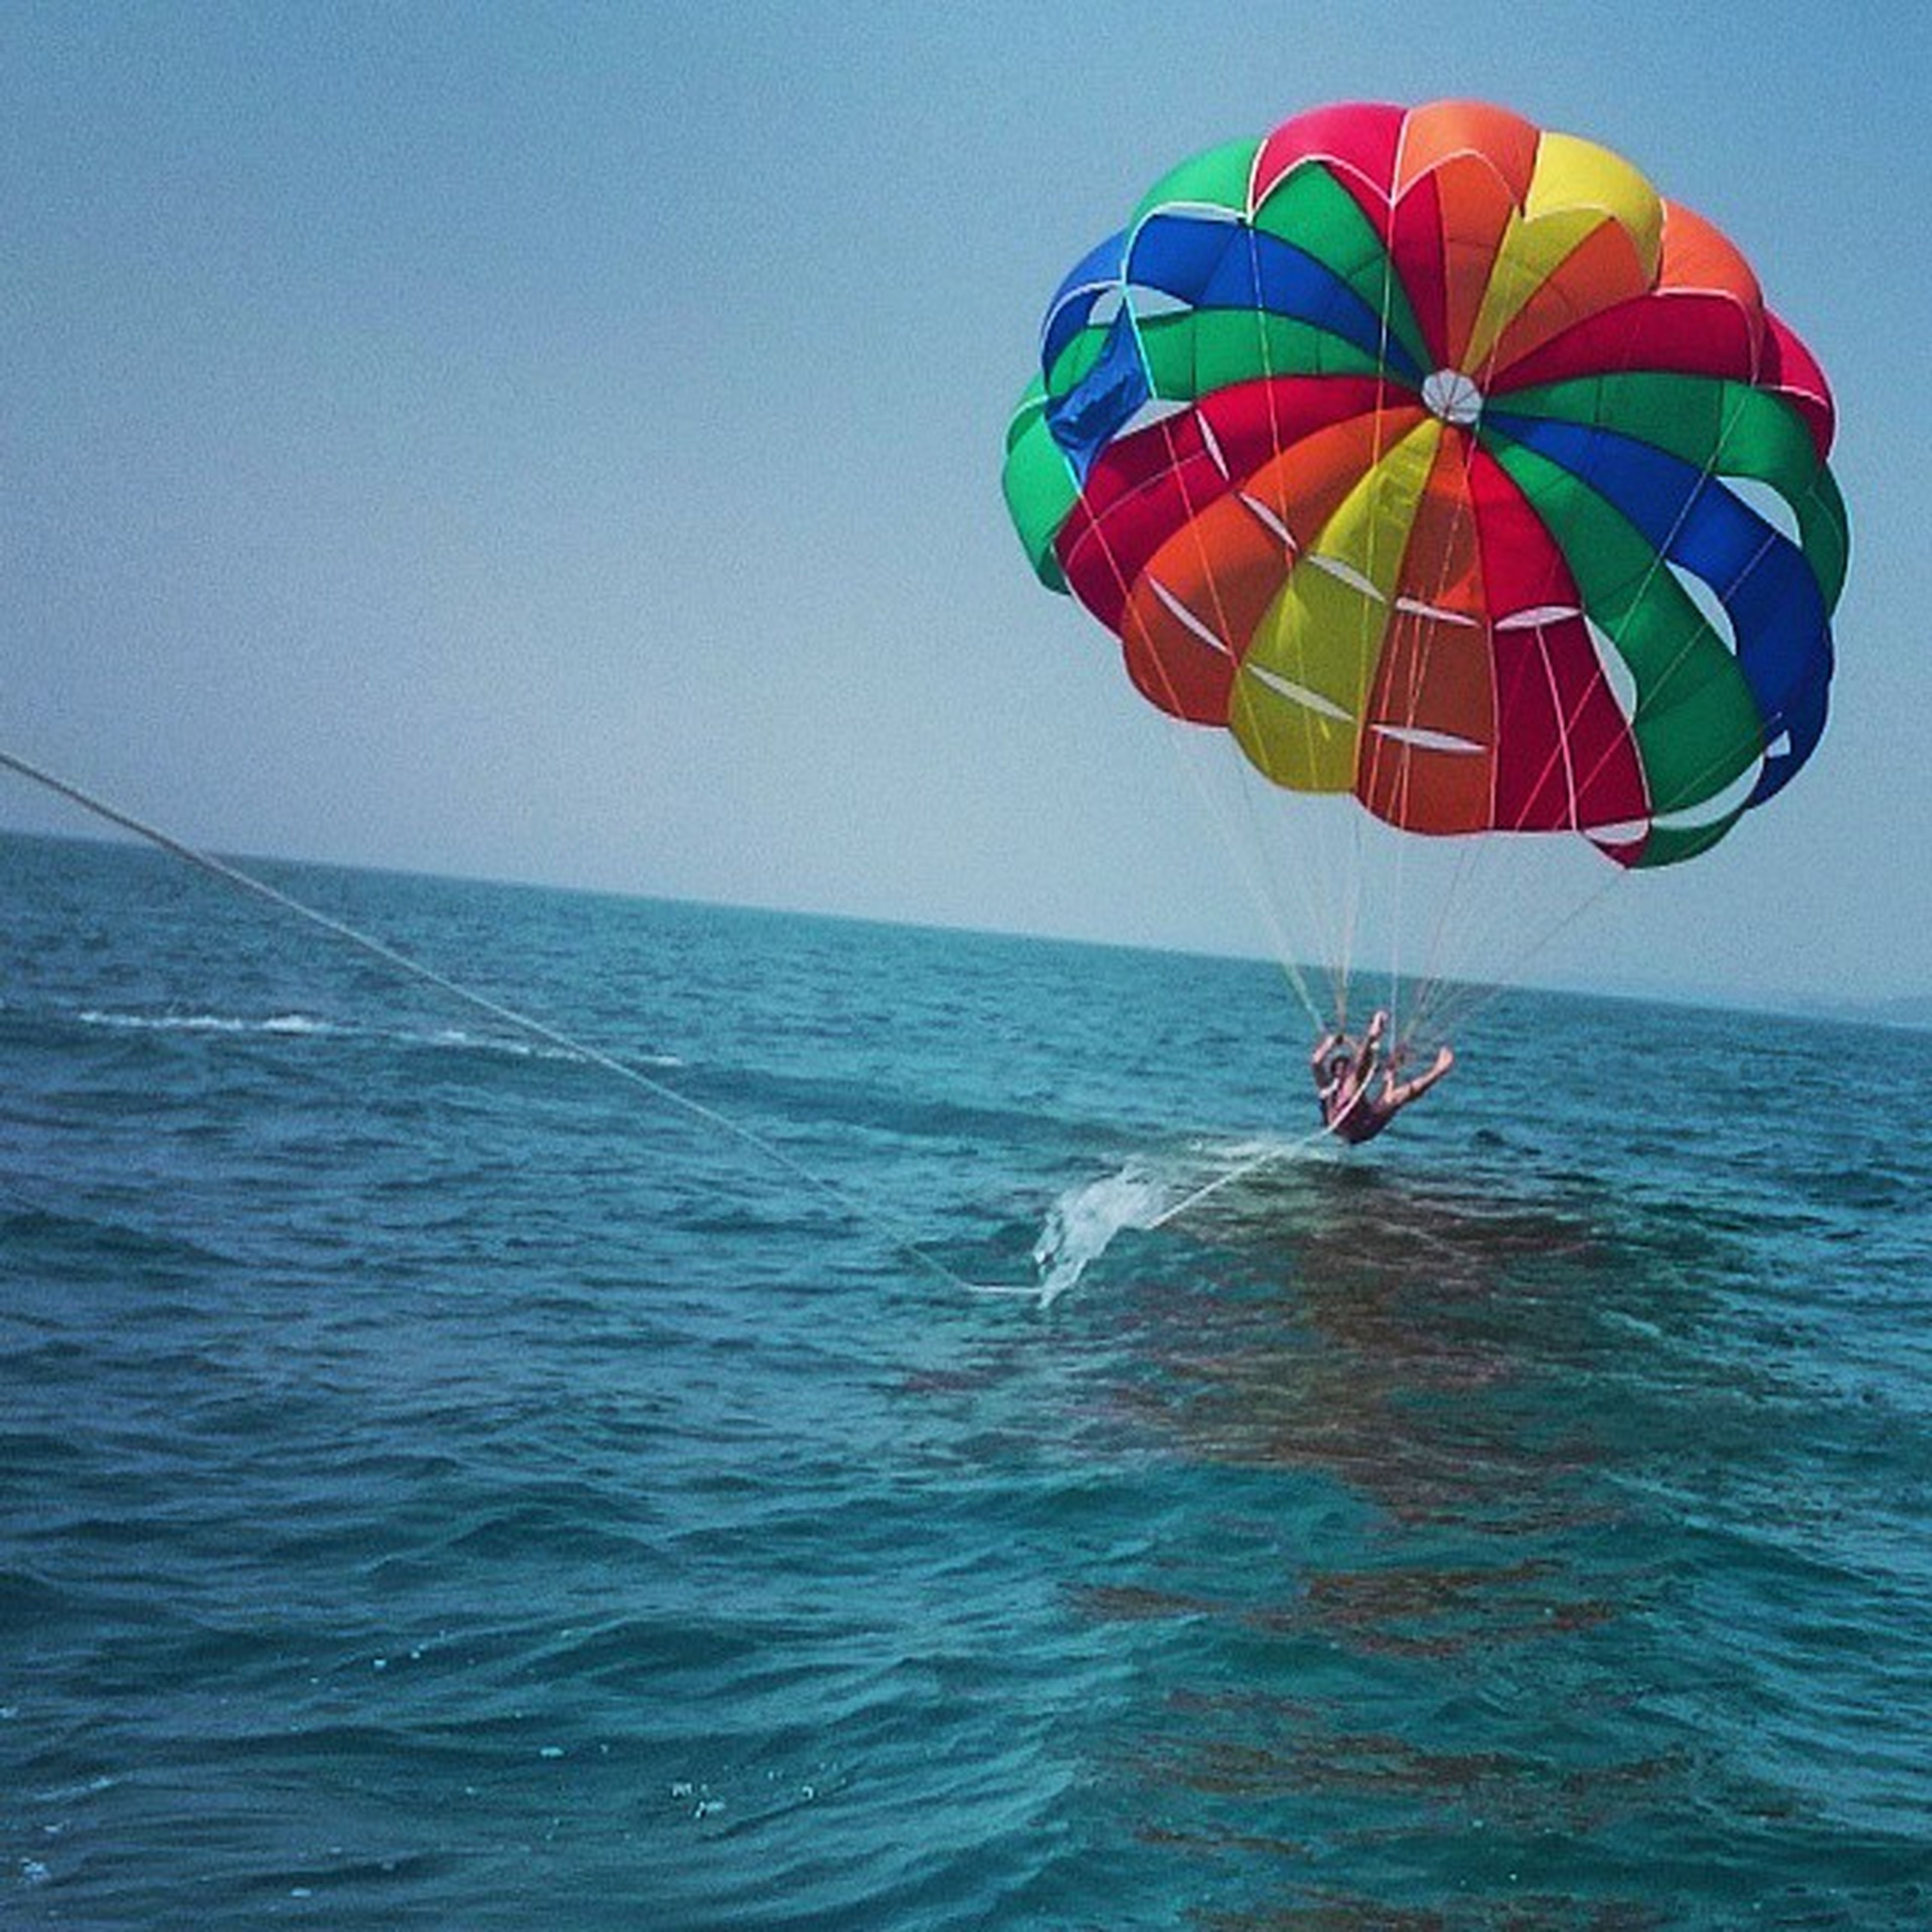 sea, water, horizon over water, leisure activity, clear sky, waterfront, blue, parachute, vacations, transportation, adventure, extreme sports, scenics, copy space, tranquility, sport, tranquil scene, lifestyles, beach